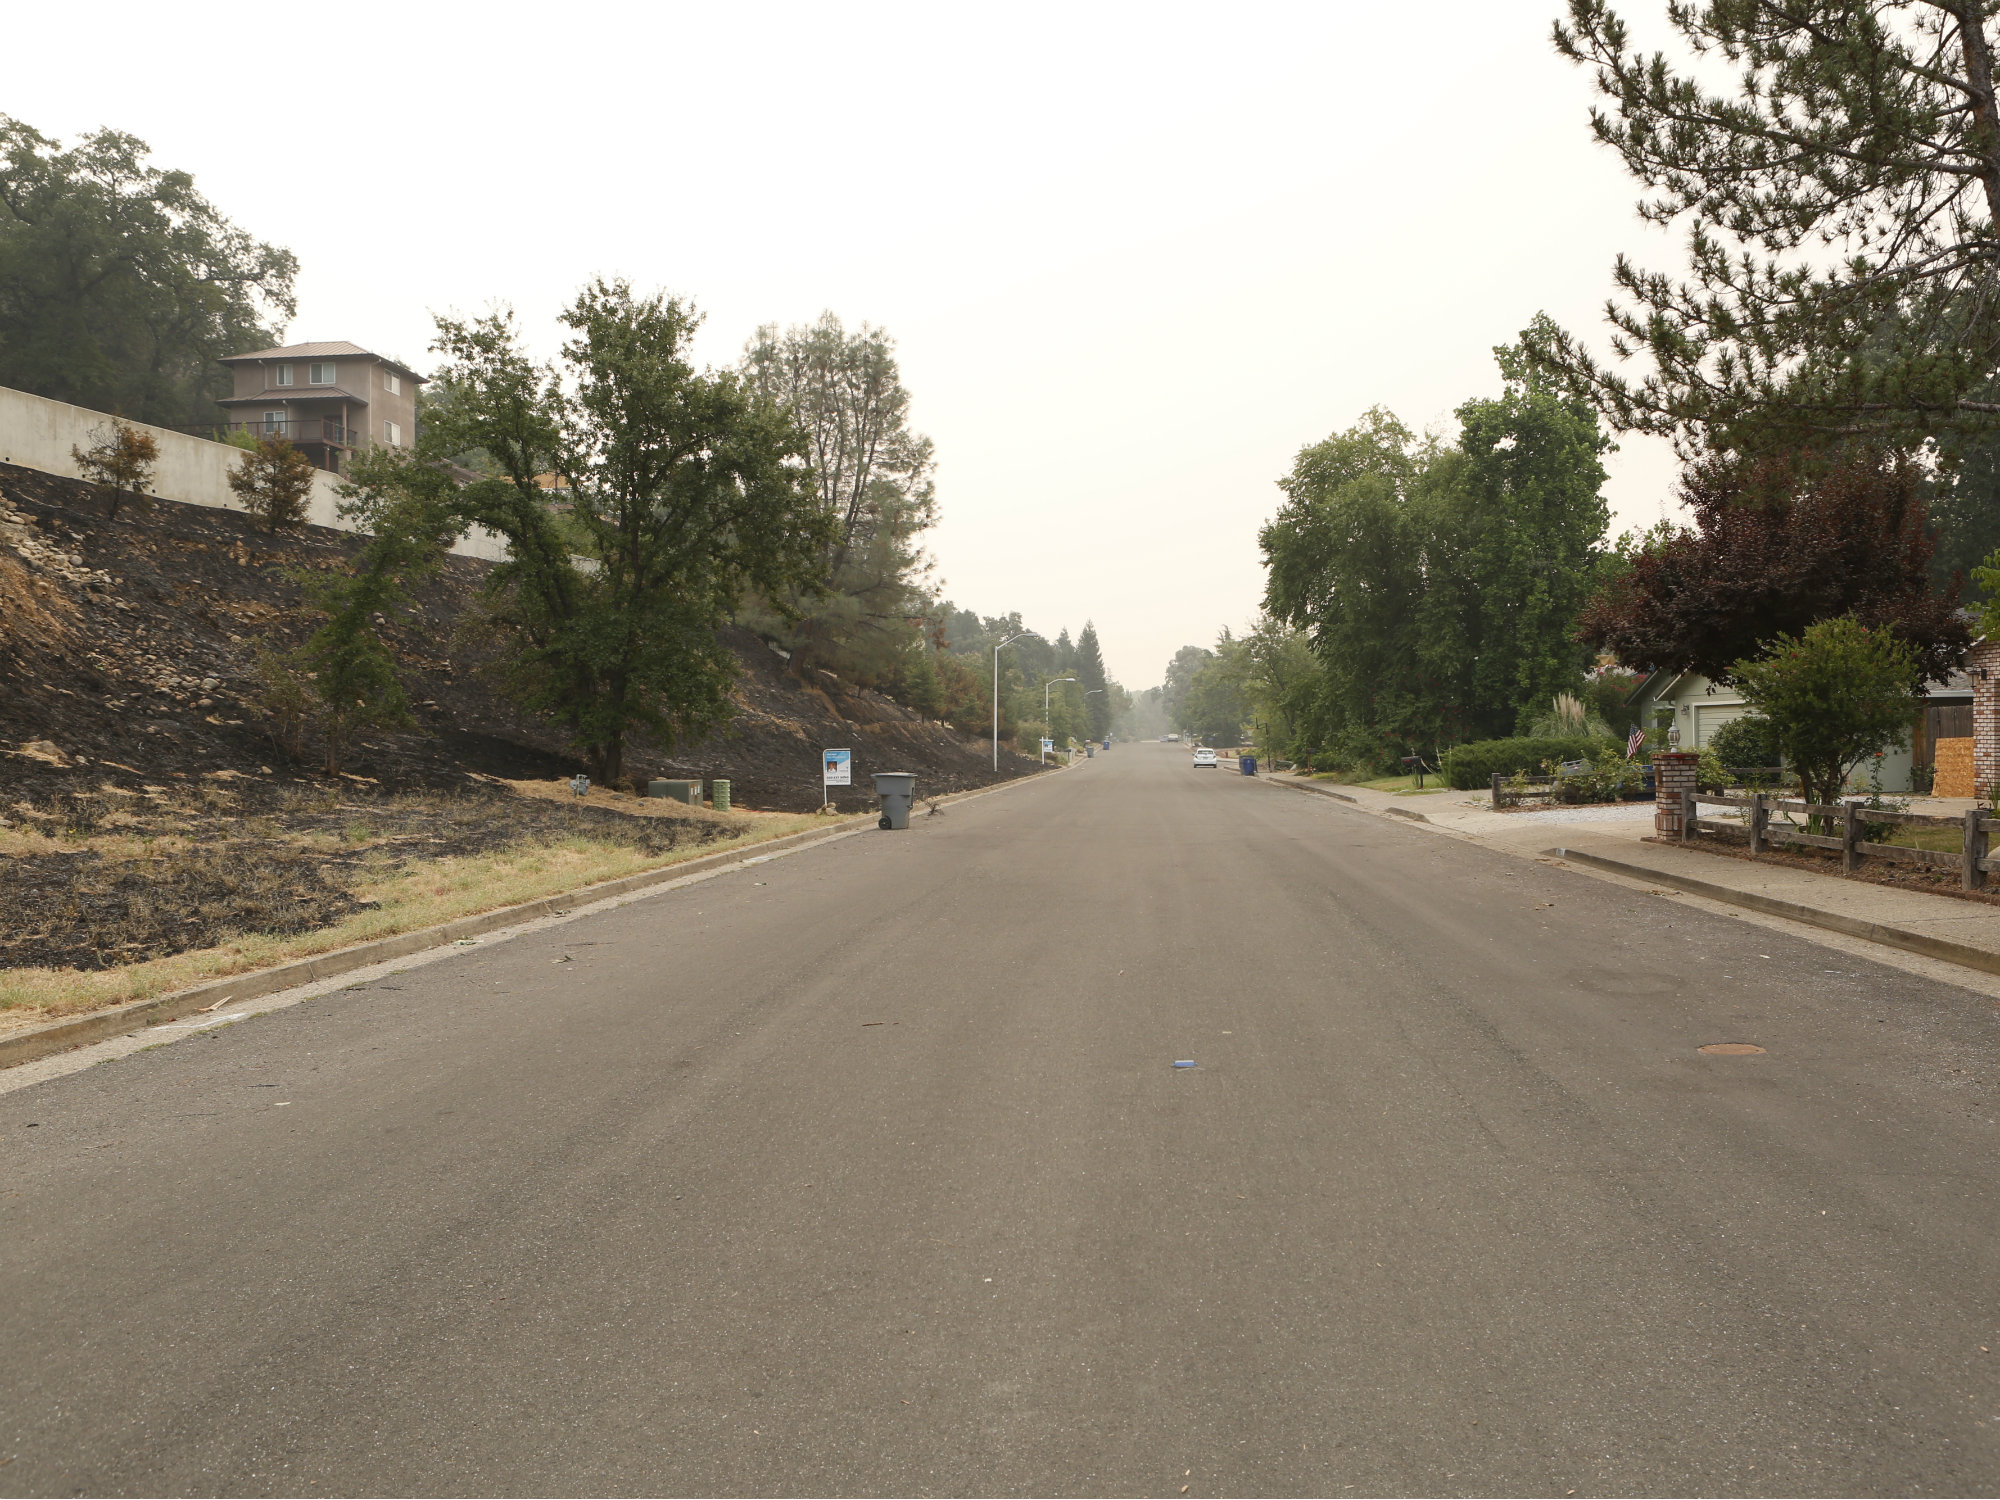 072818Carr Fire Streets 1-BJ-p